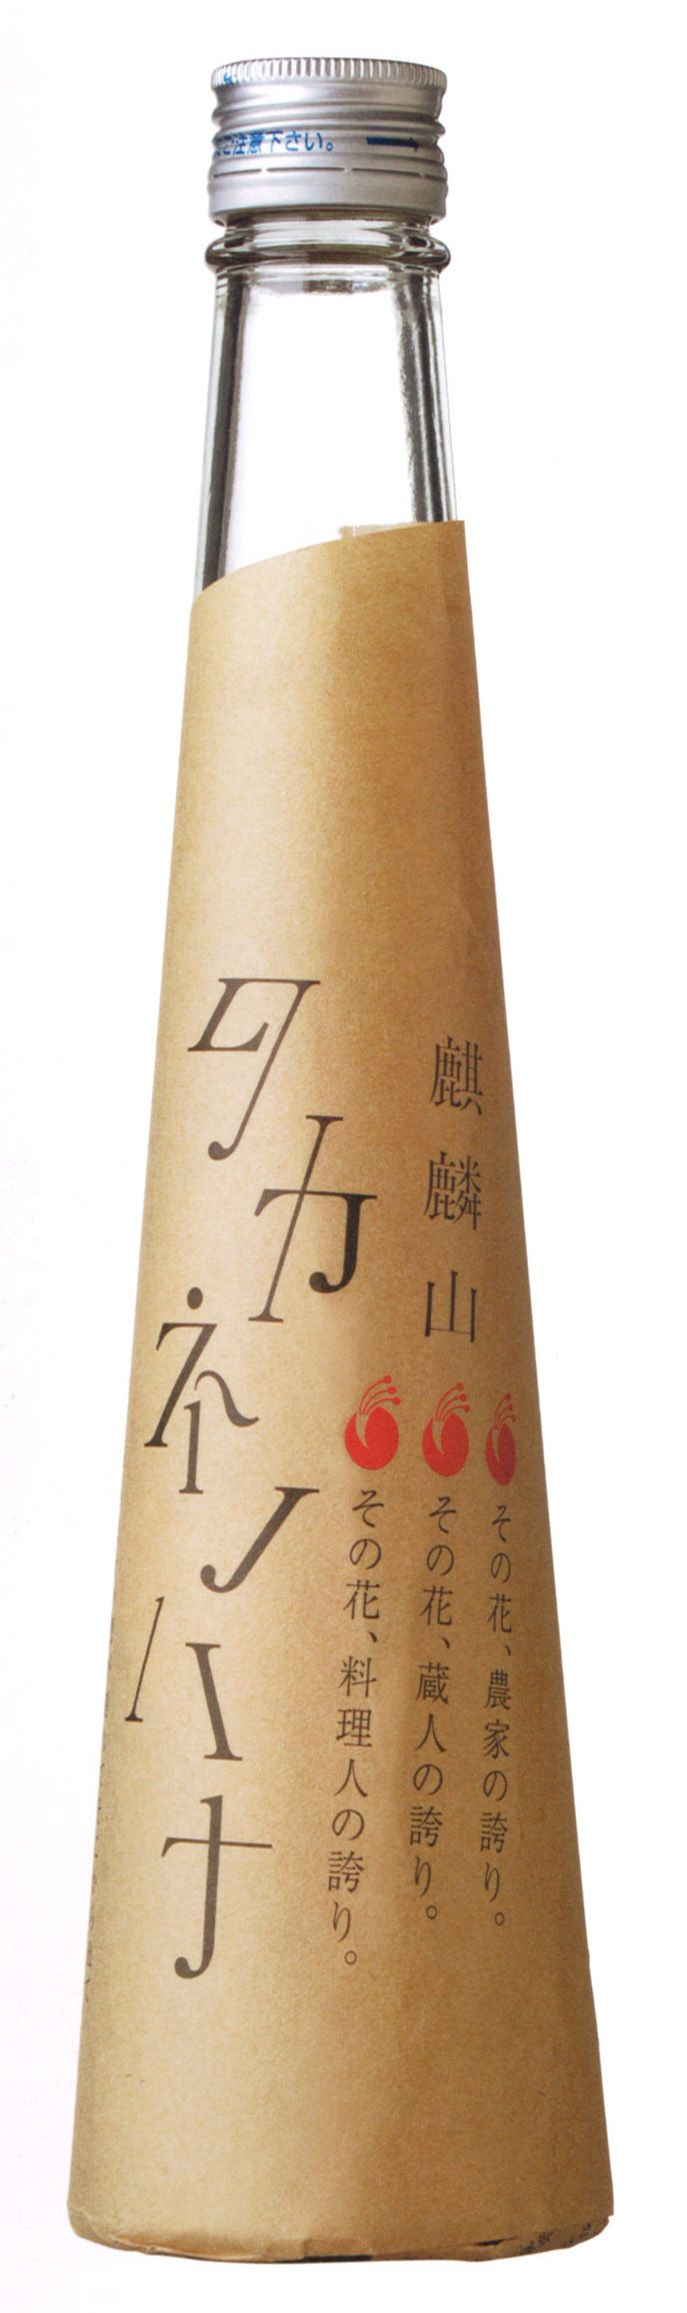 takane no hana some kind of cherry beverage (I think) #packaging PD